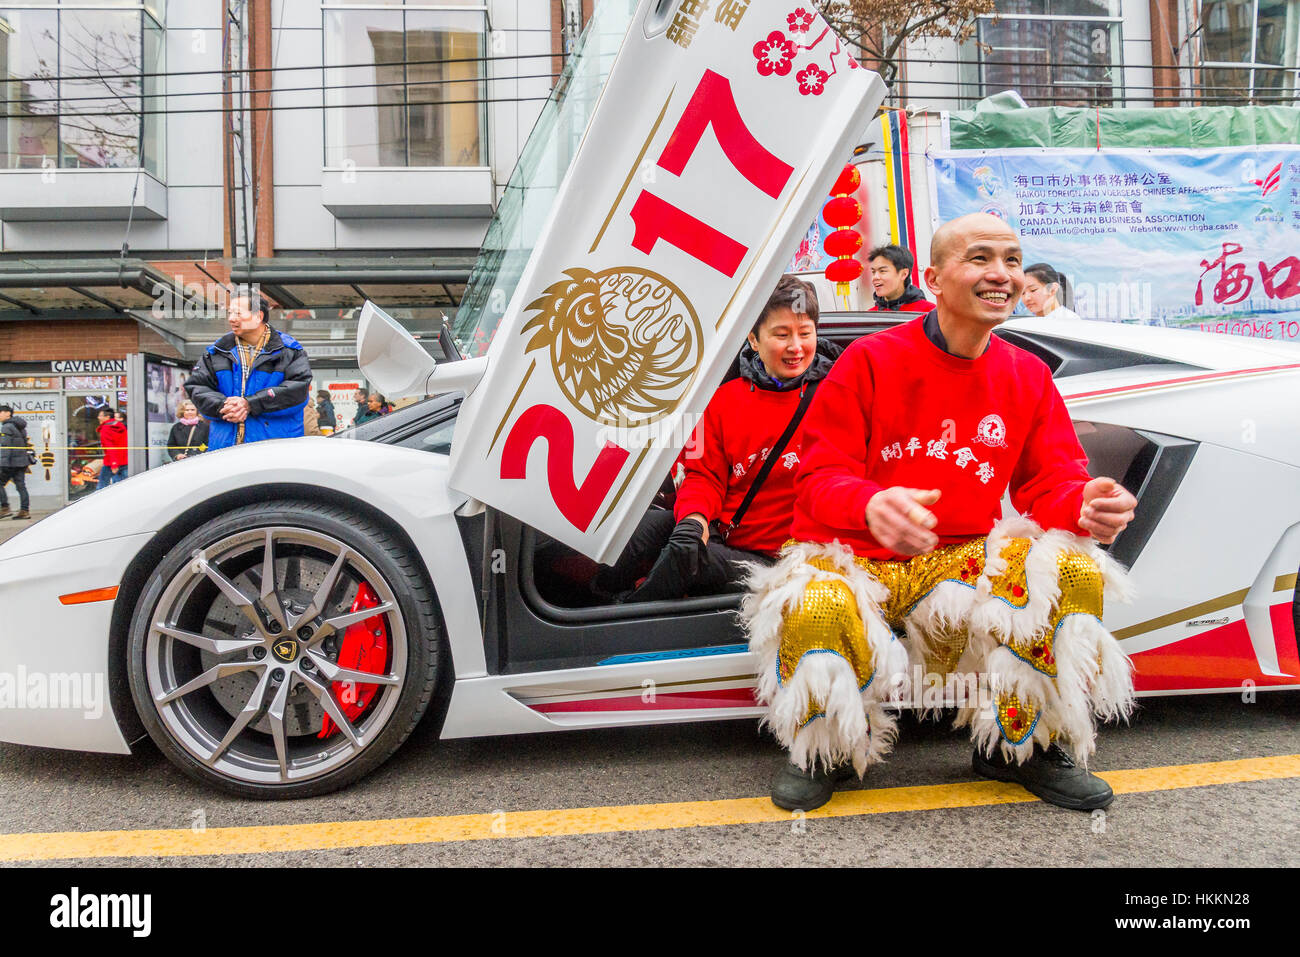 Vancouver, Canada. 29th January, 2017. Lamborghini sports car during the Chinese New Year parade to celebrate the - Stock Image